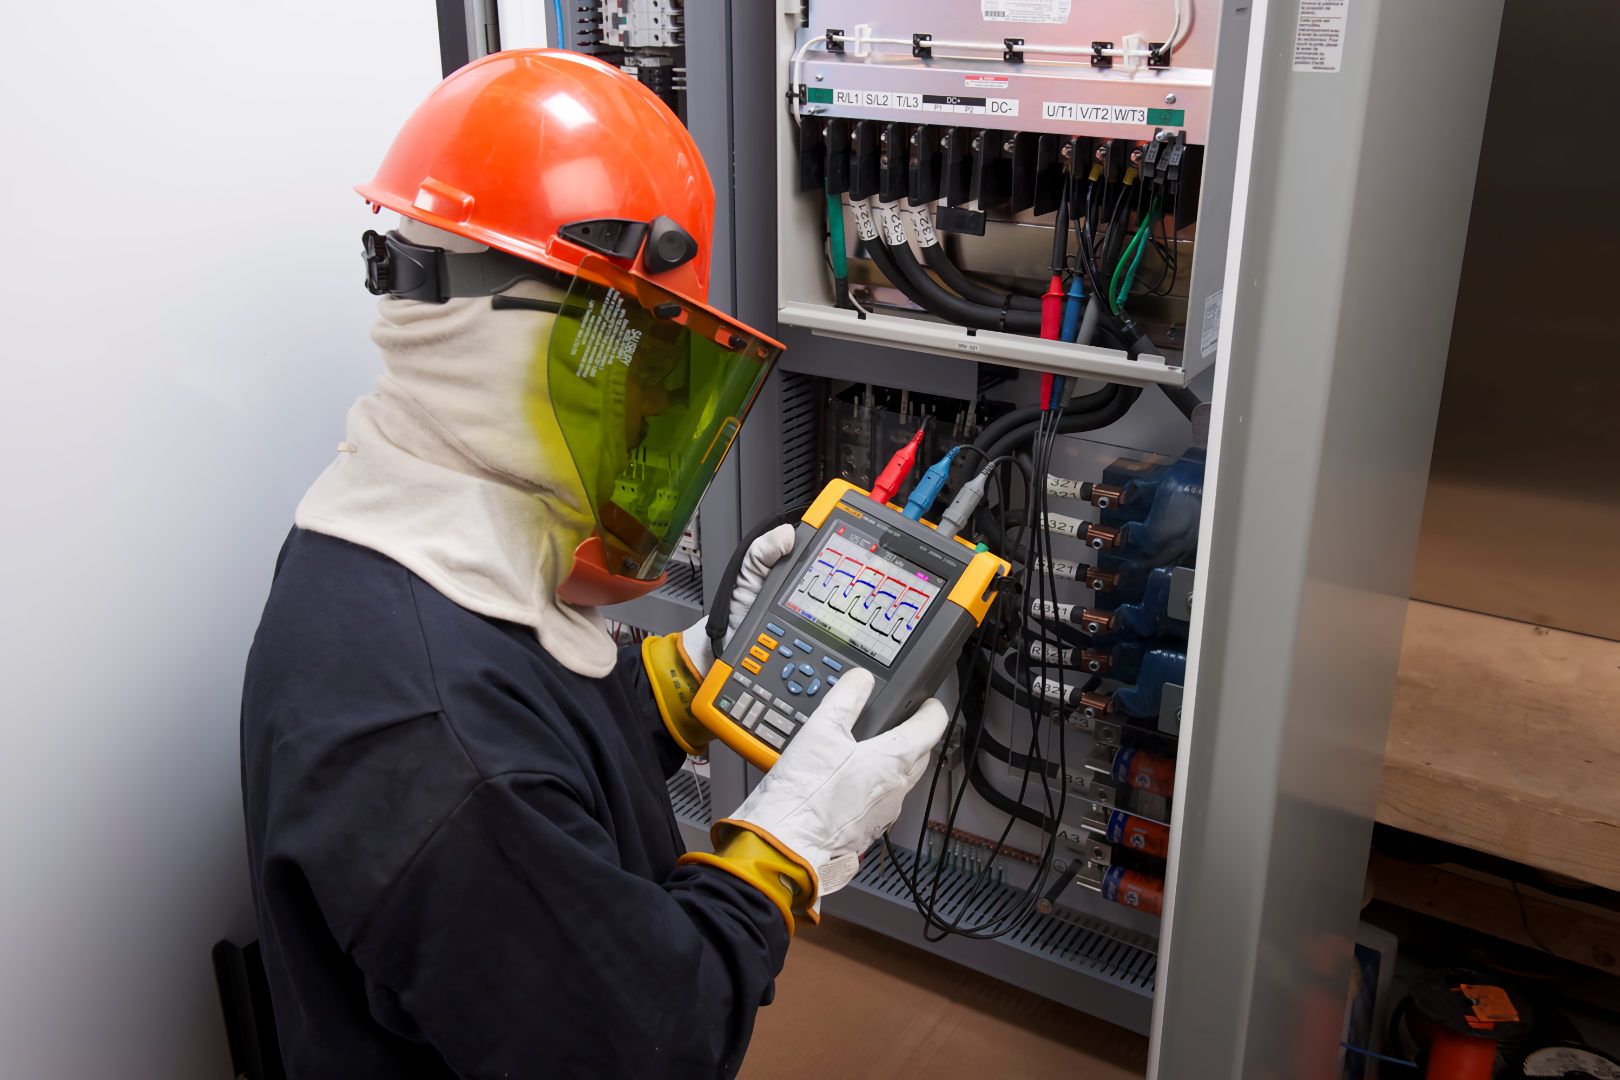 electrician using a power analyser on electrical switchboard